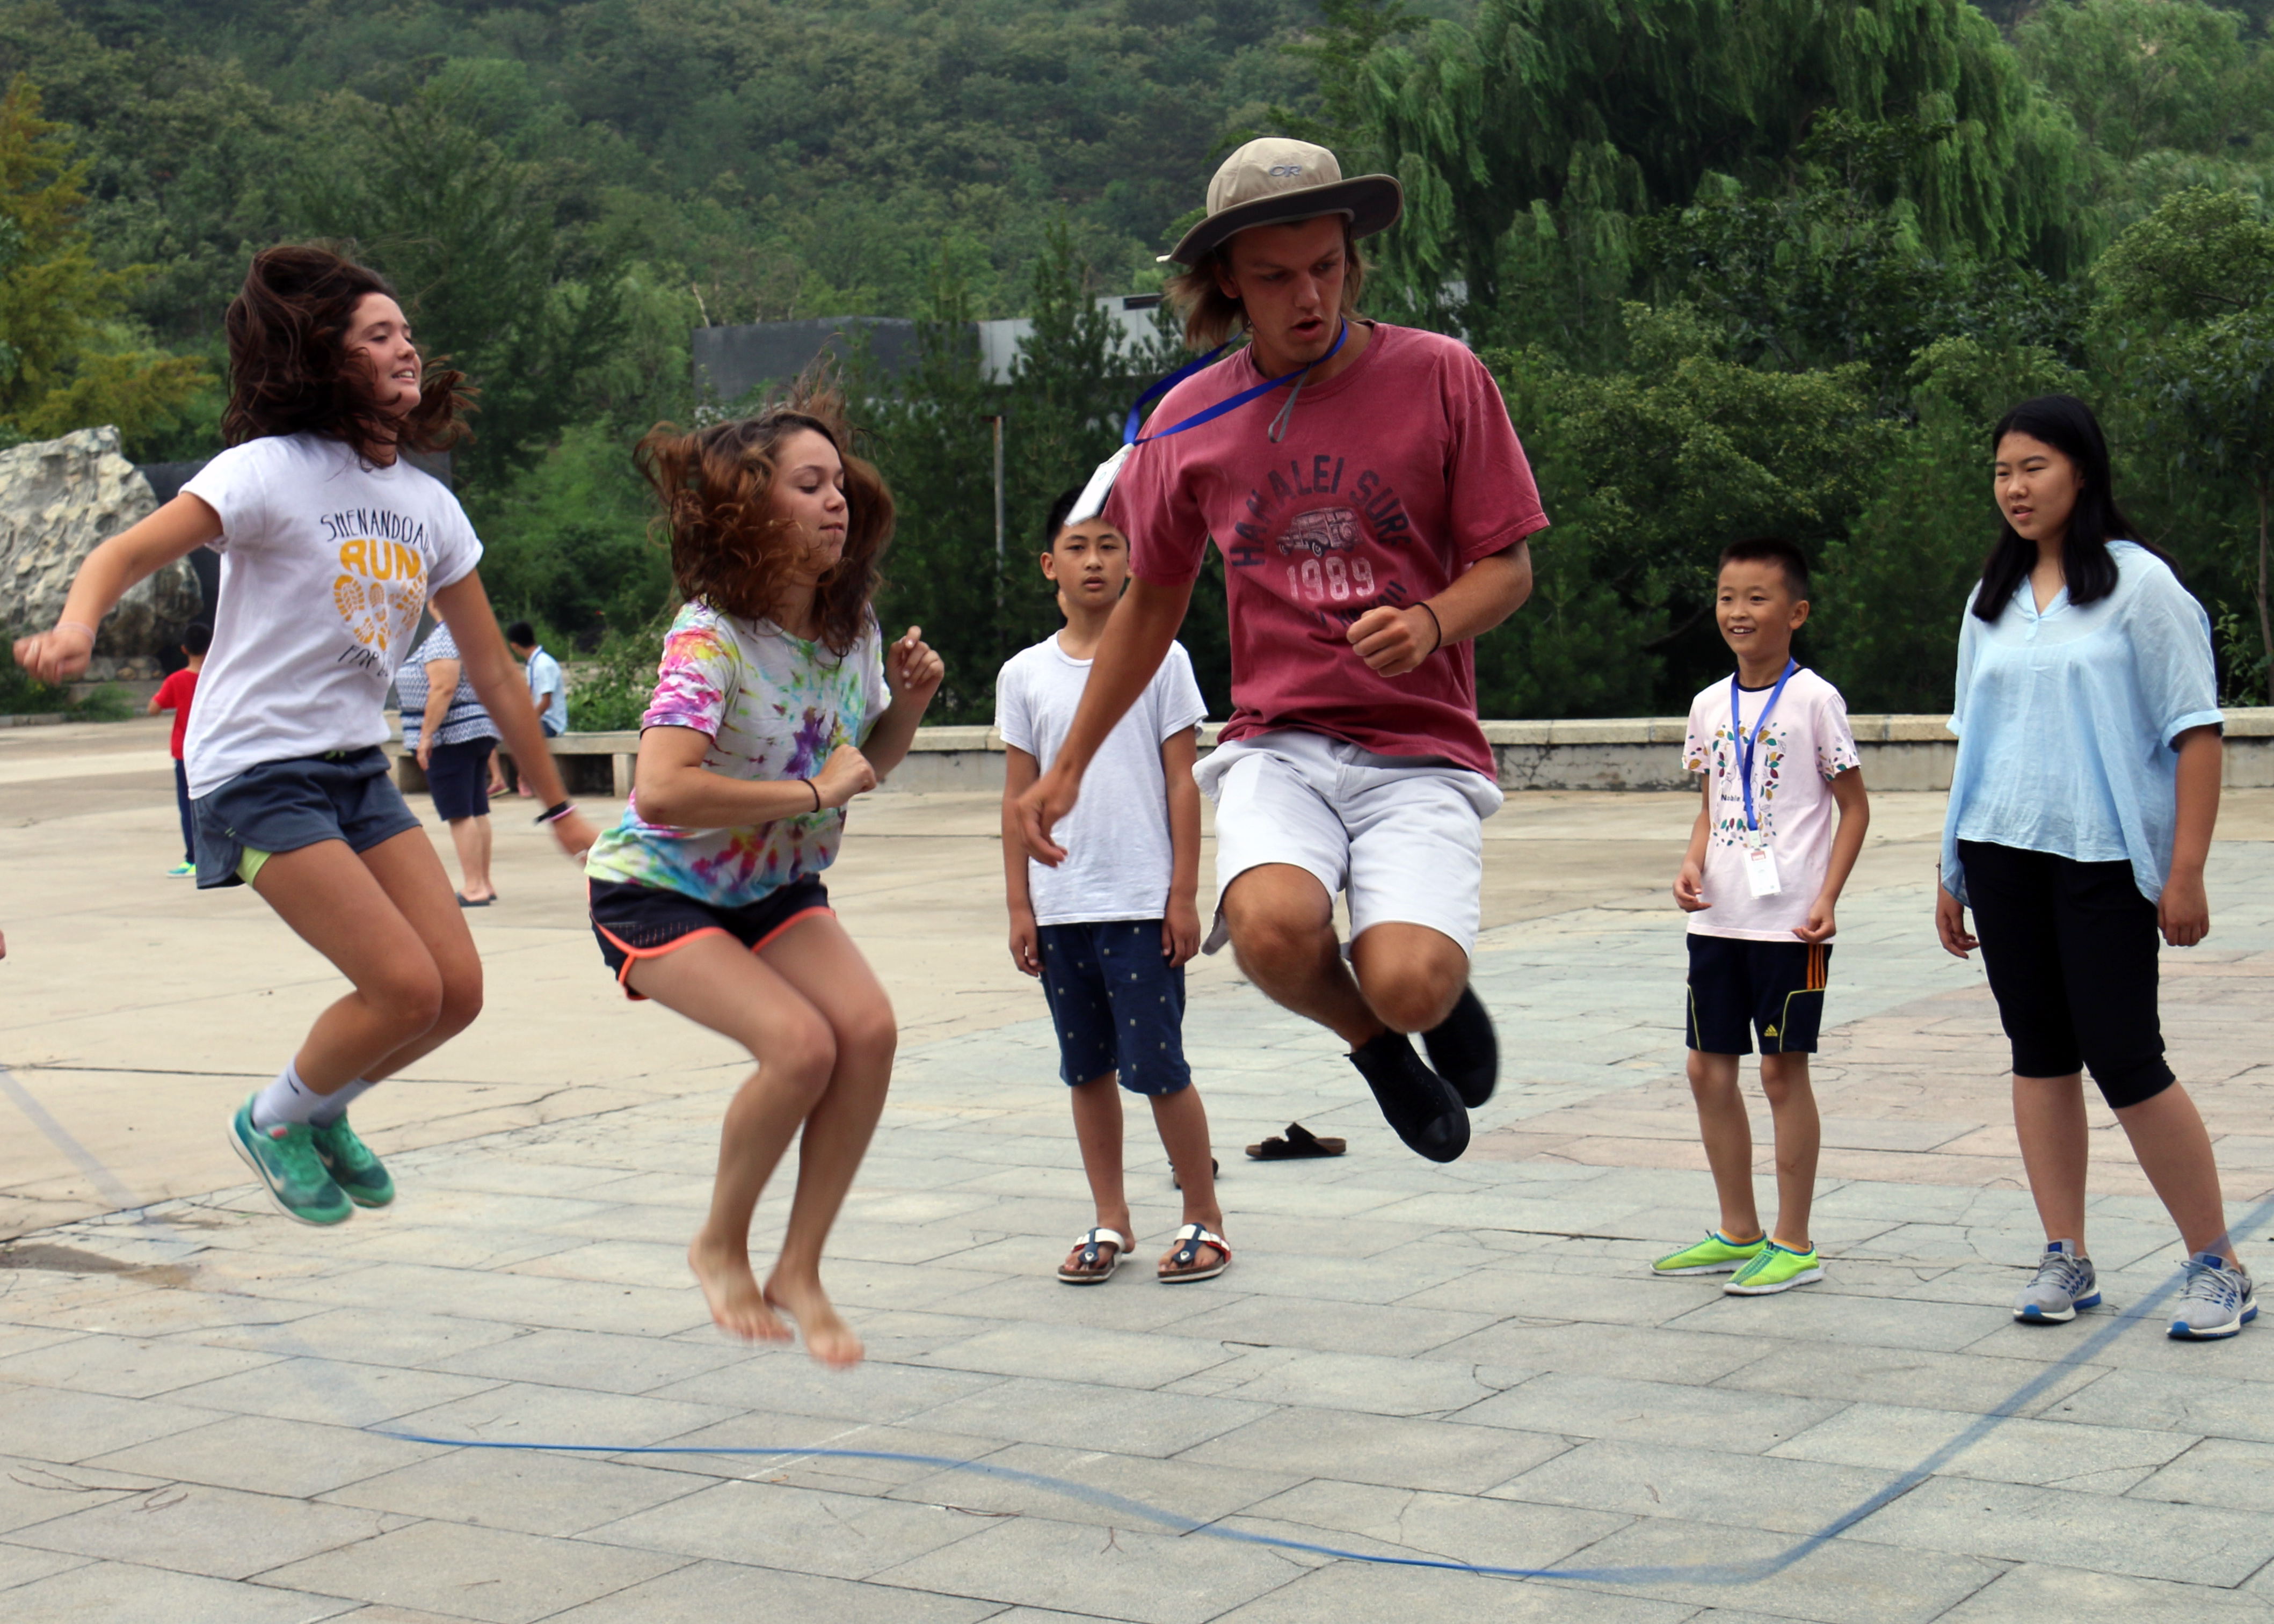 Students jump rope during a summer camp